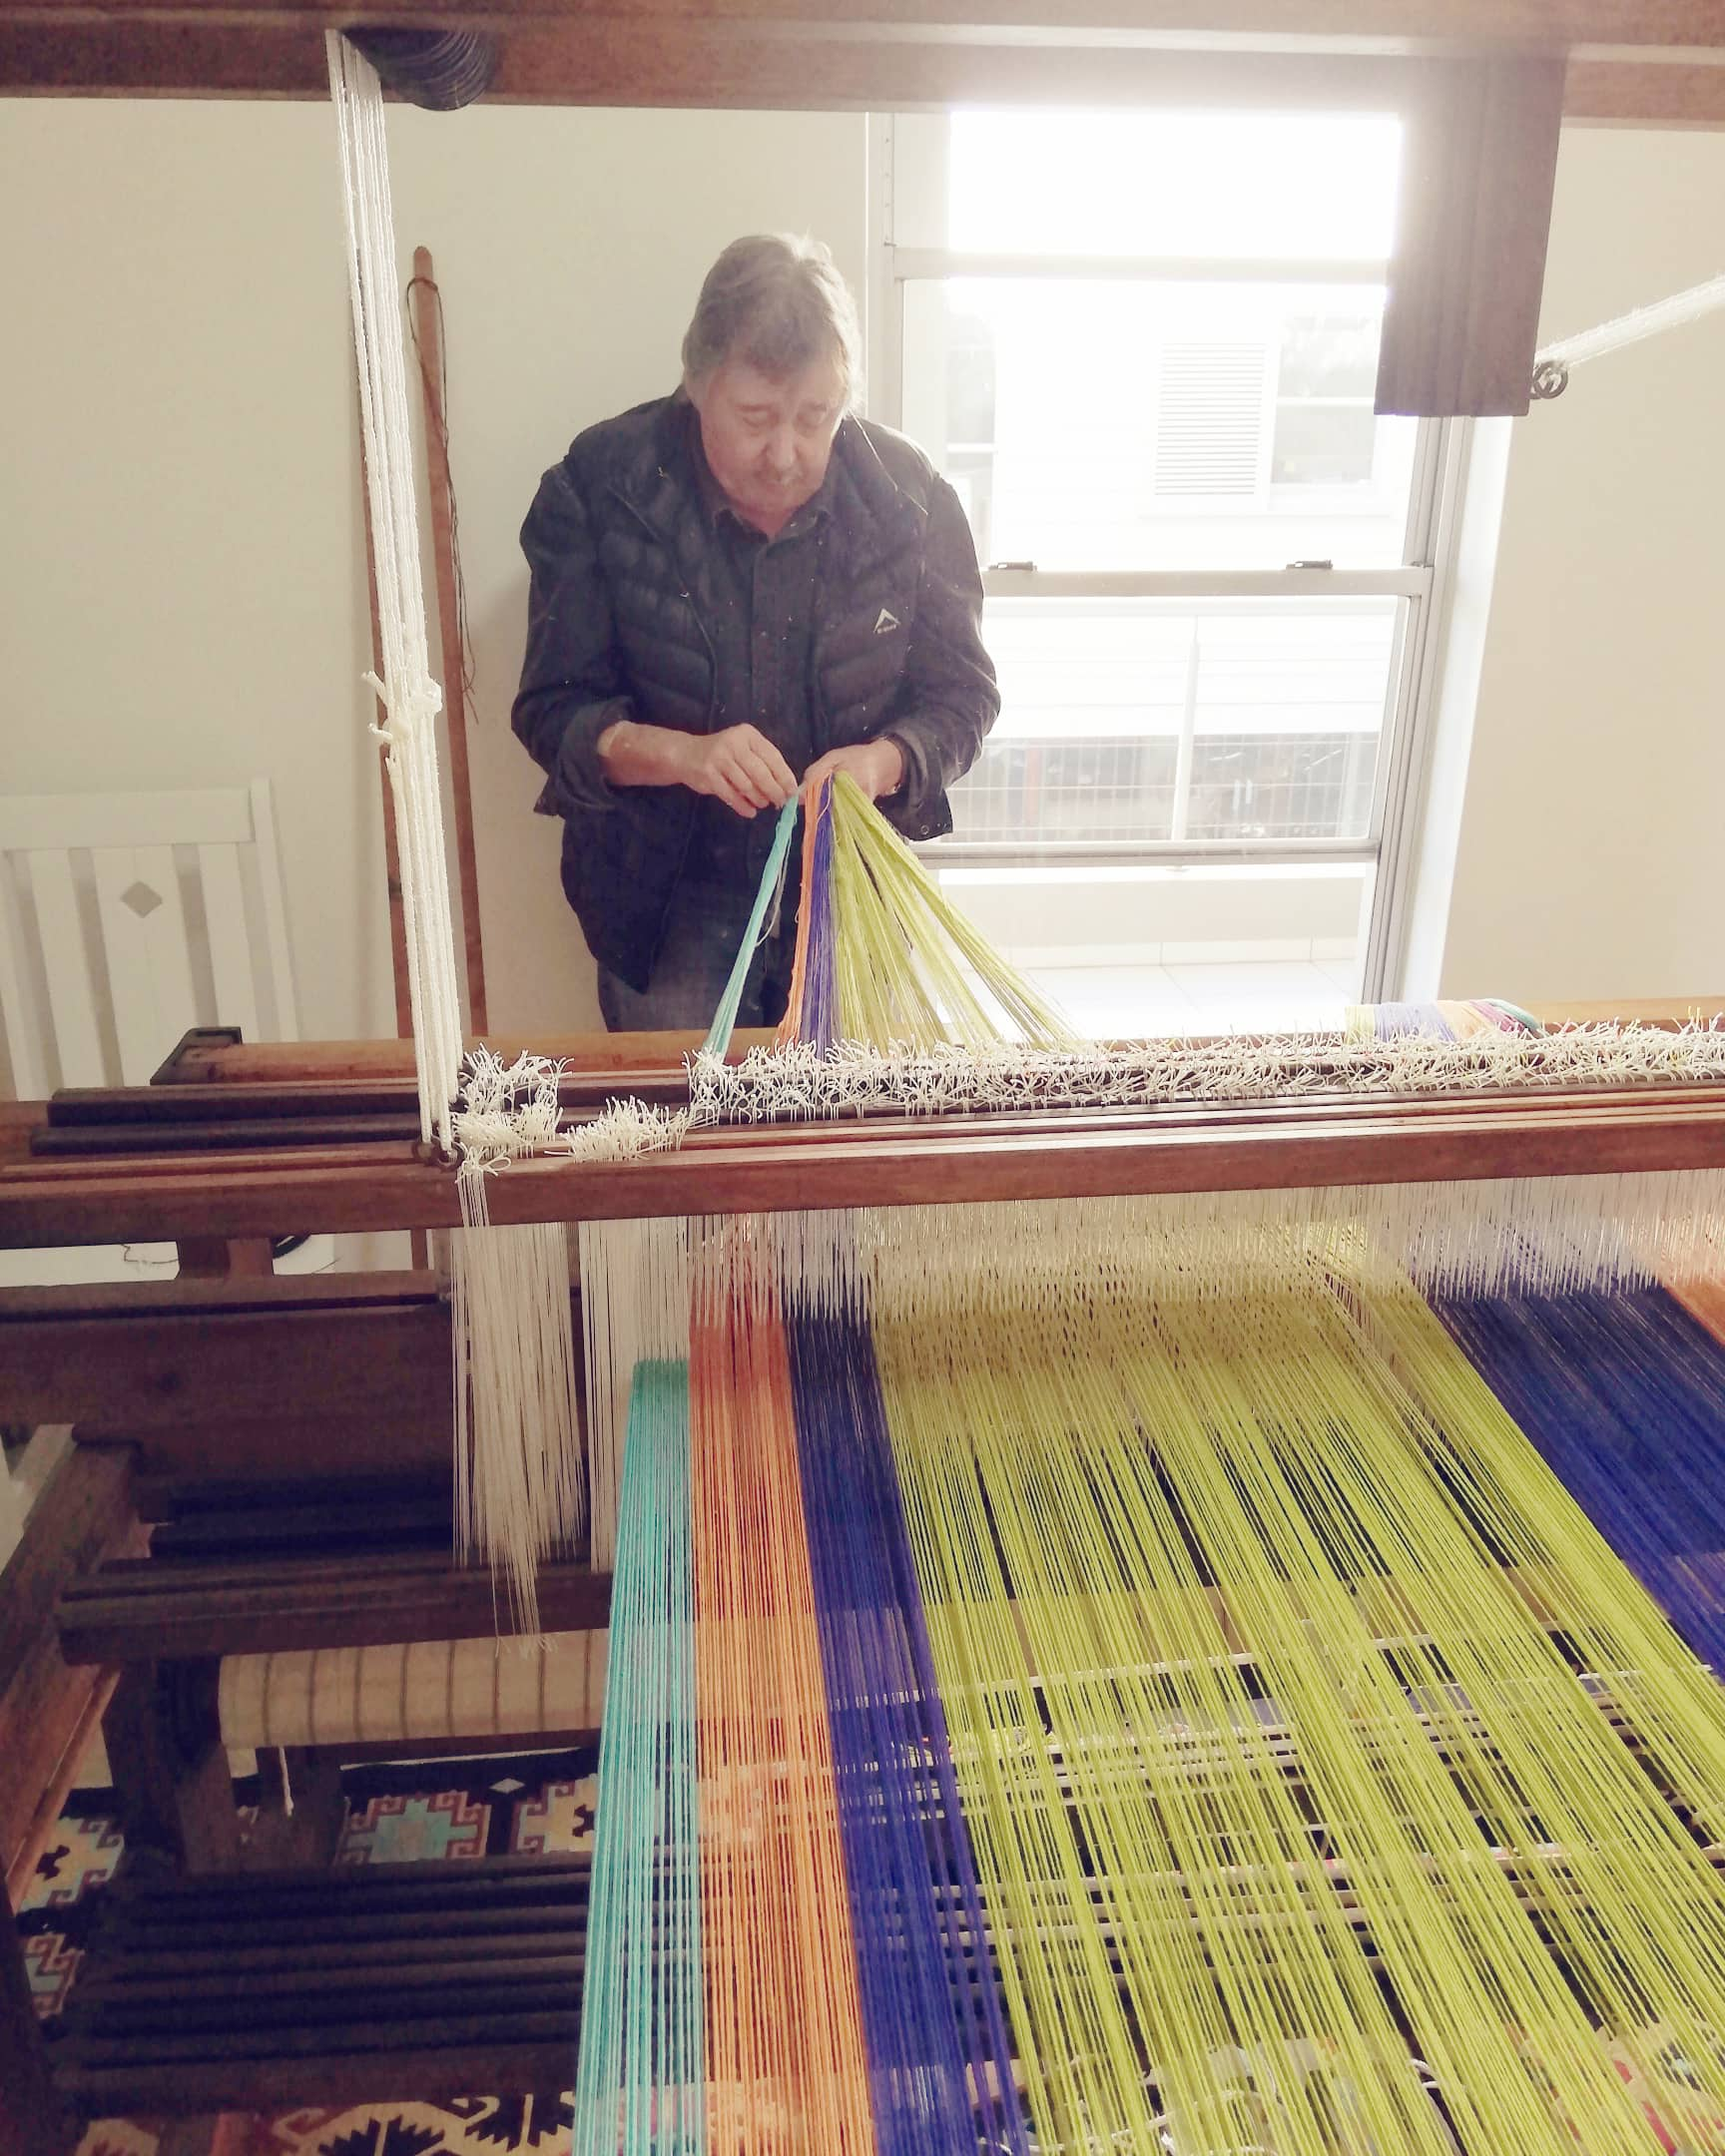 Stuart Holding, Mungo founder and Master Weaver, helping designer Lenore with her warp